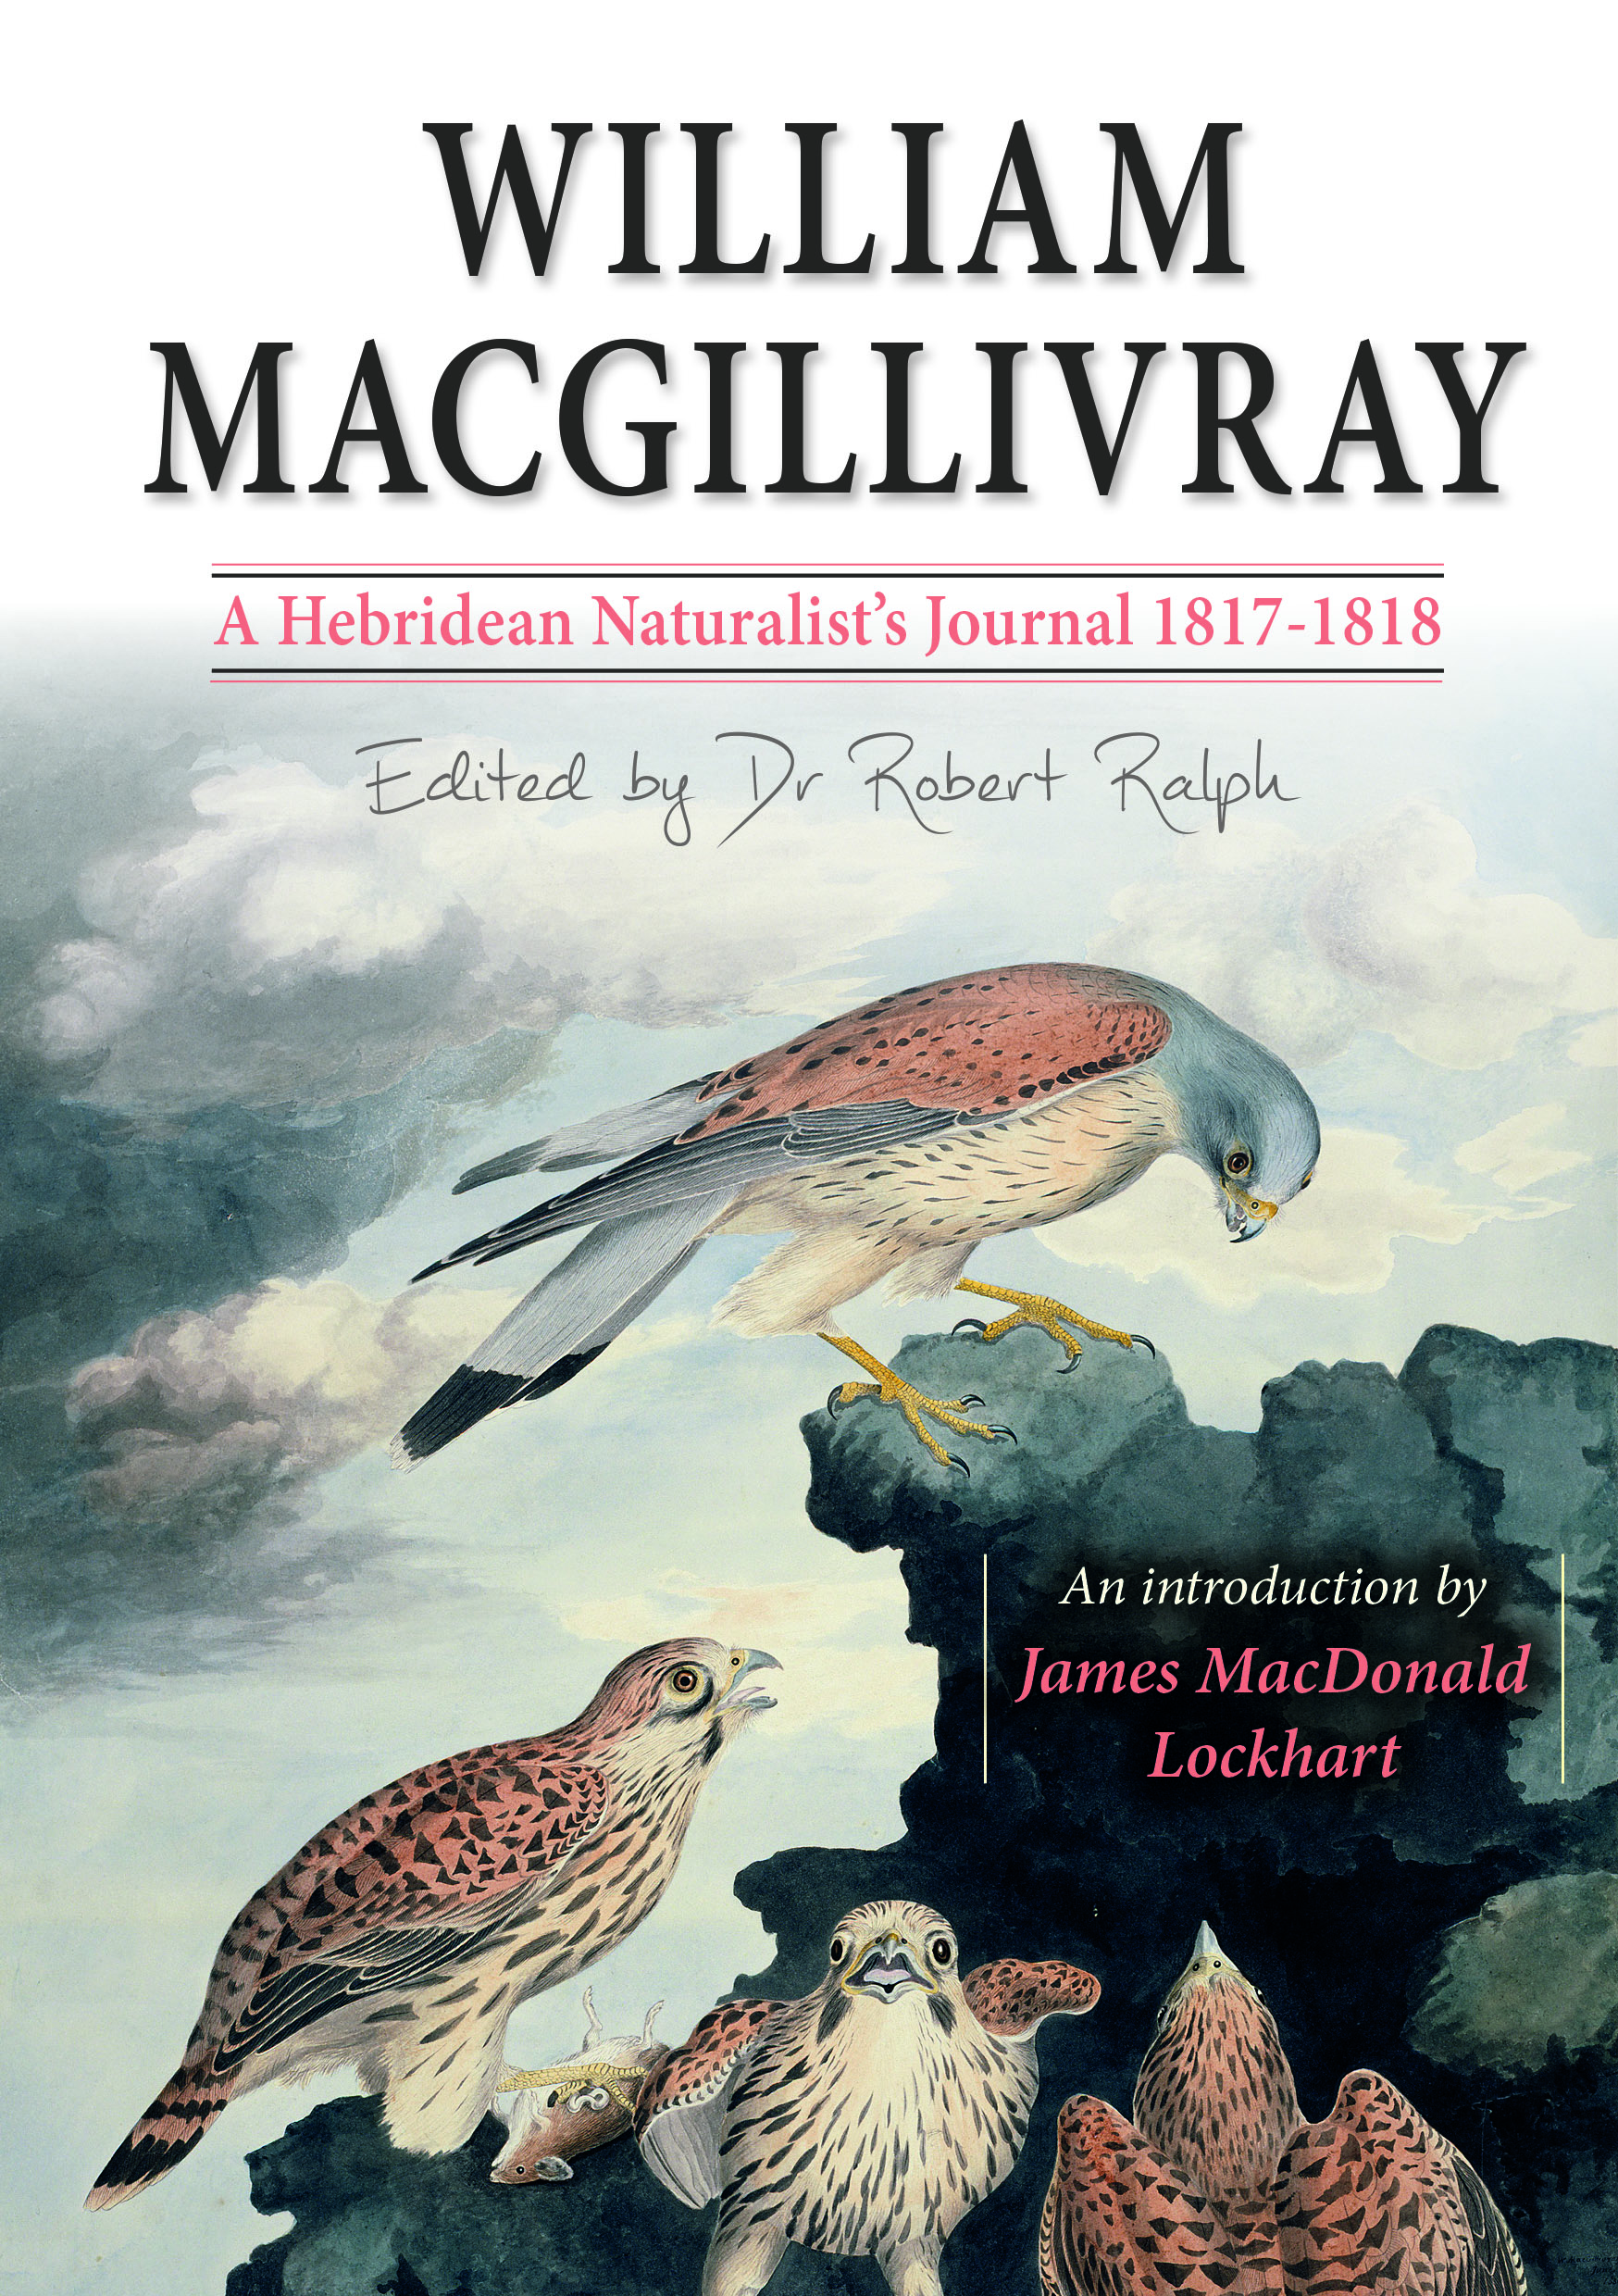 William MacGillivray: Travels With A Hebridean Naturalist